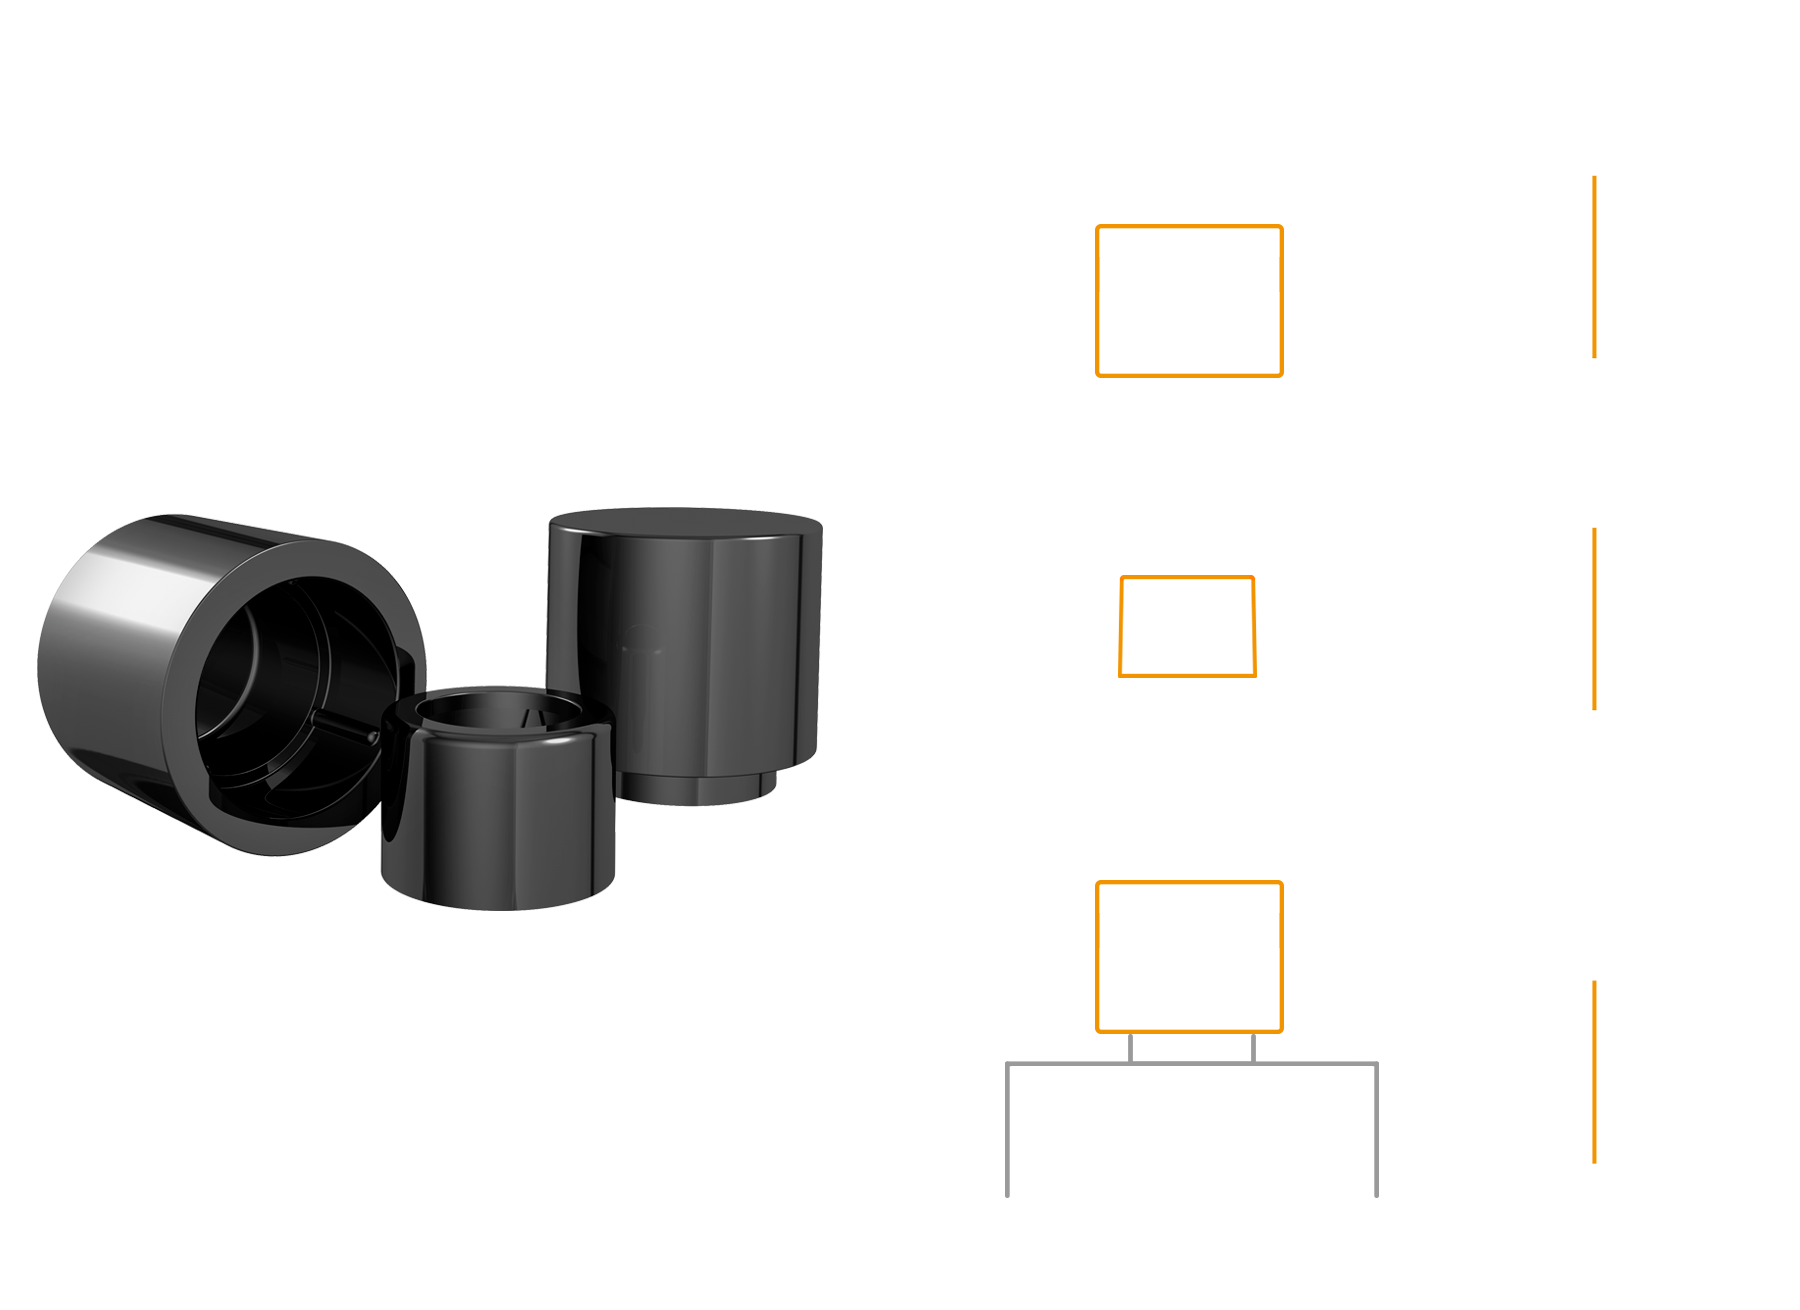 PPCAPCO-CC-001 M&A Packaging Group